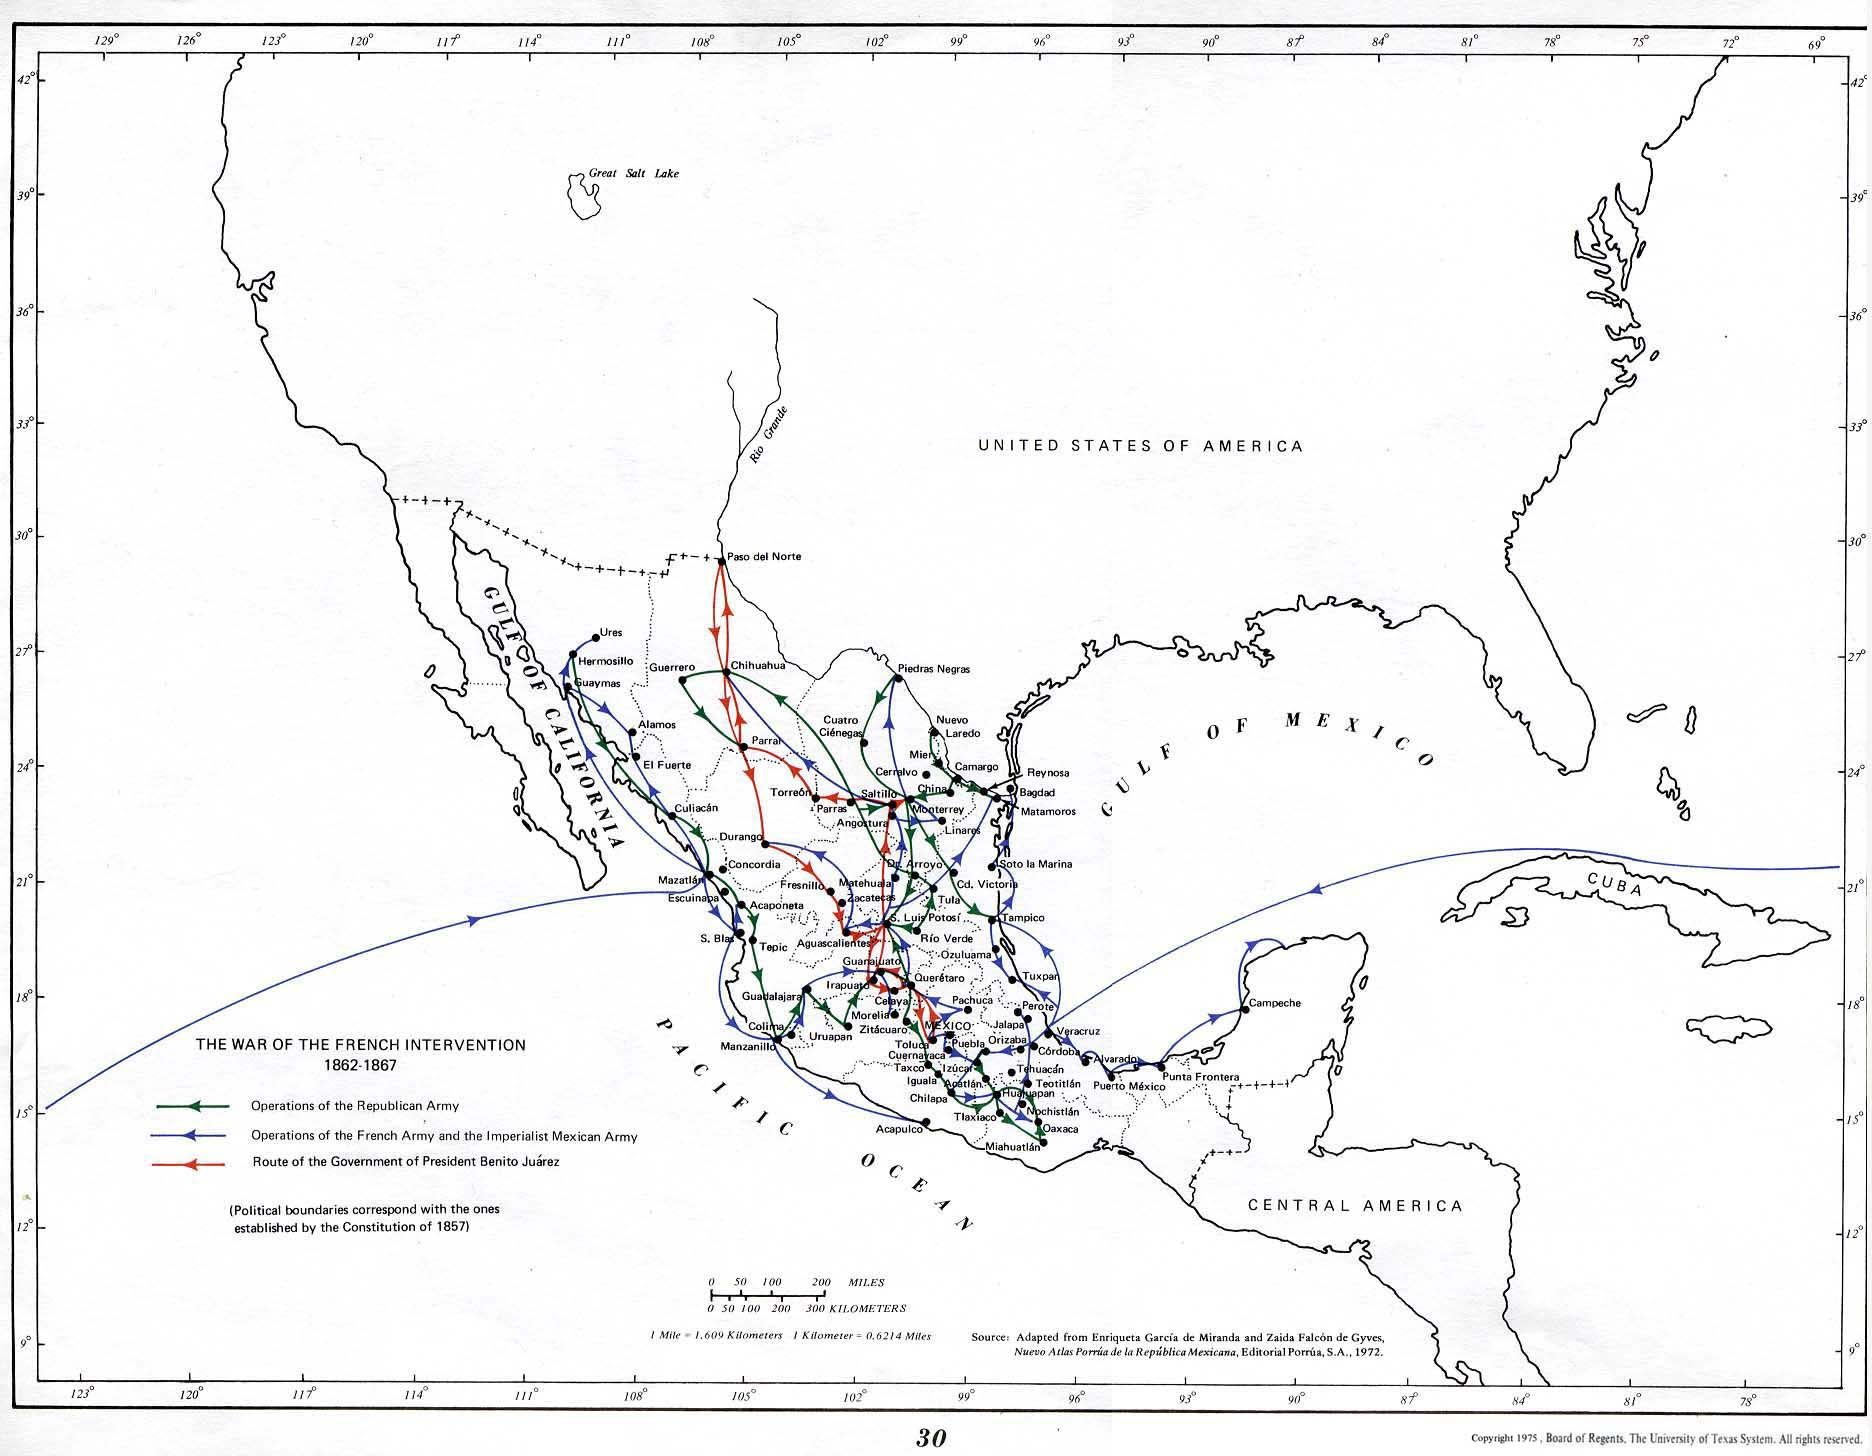 French Intervention War Map, Mexico 1862 - 1867